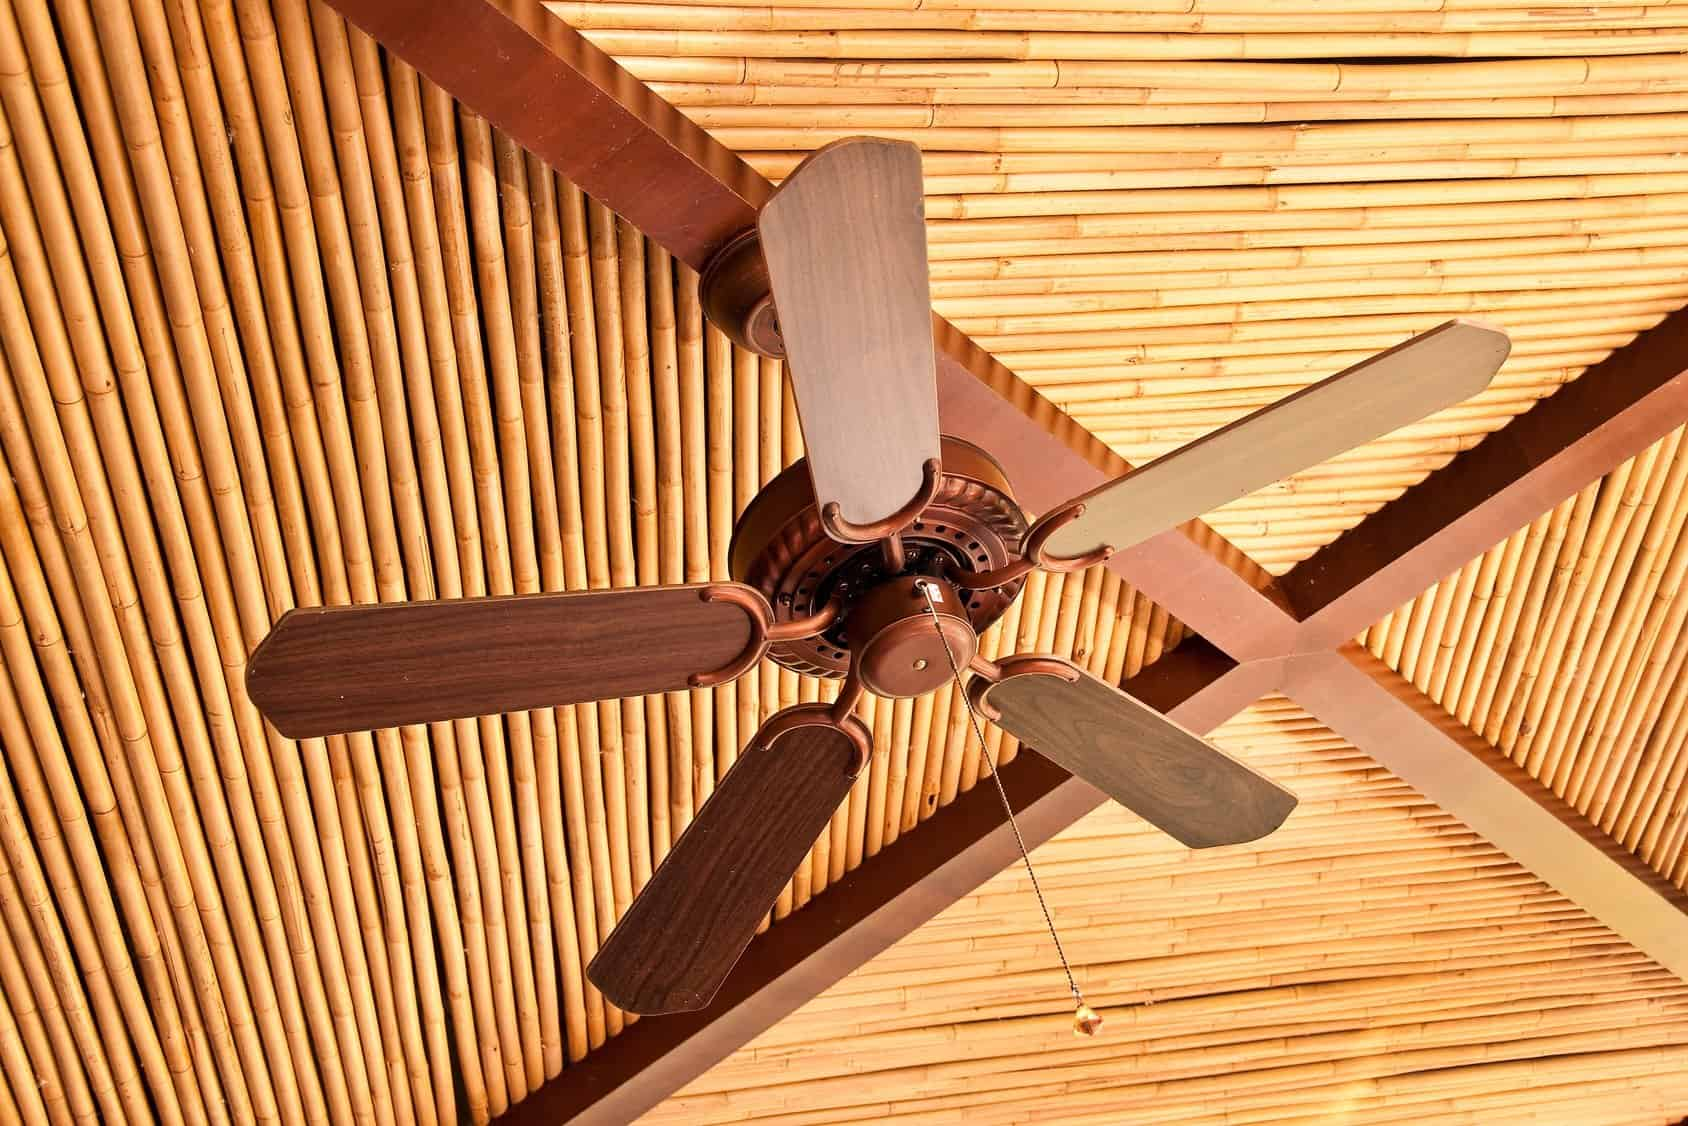 rustic ceiling fans get a fan thatu0027s the right size